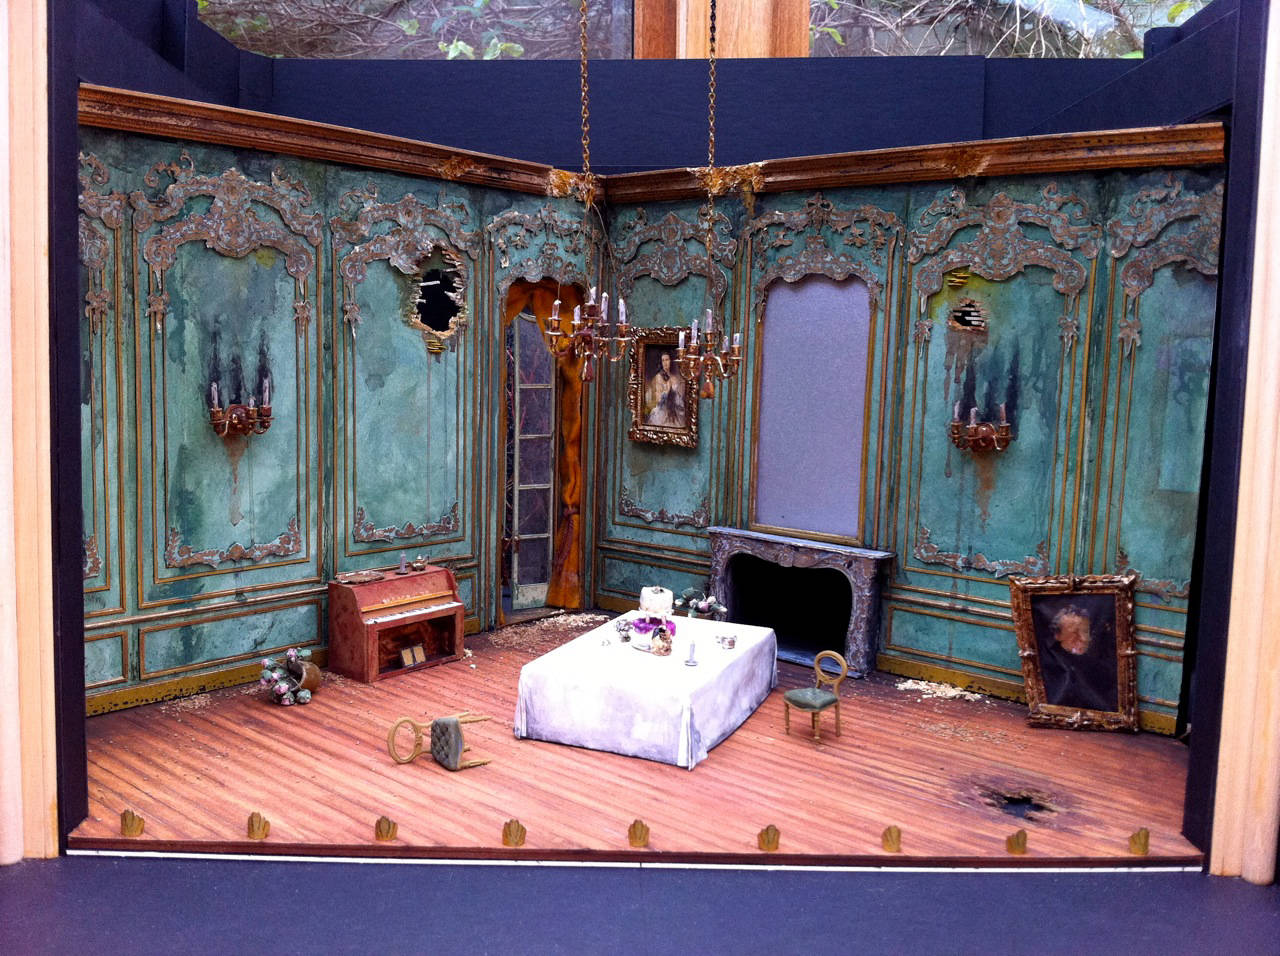 GREAT EXPECTATIONS - Set Design - Robin Peoples